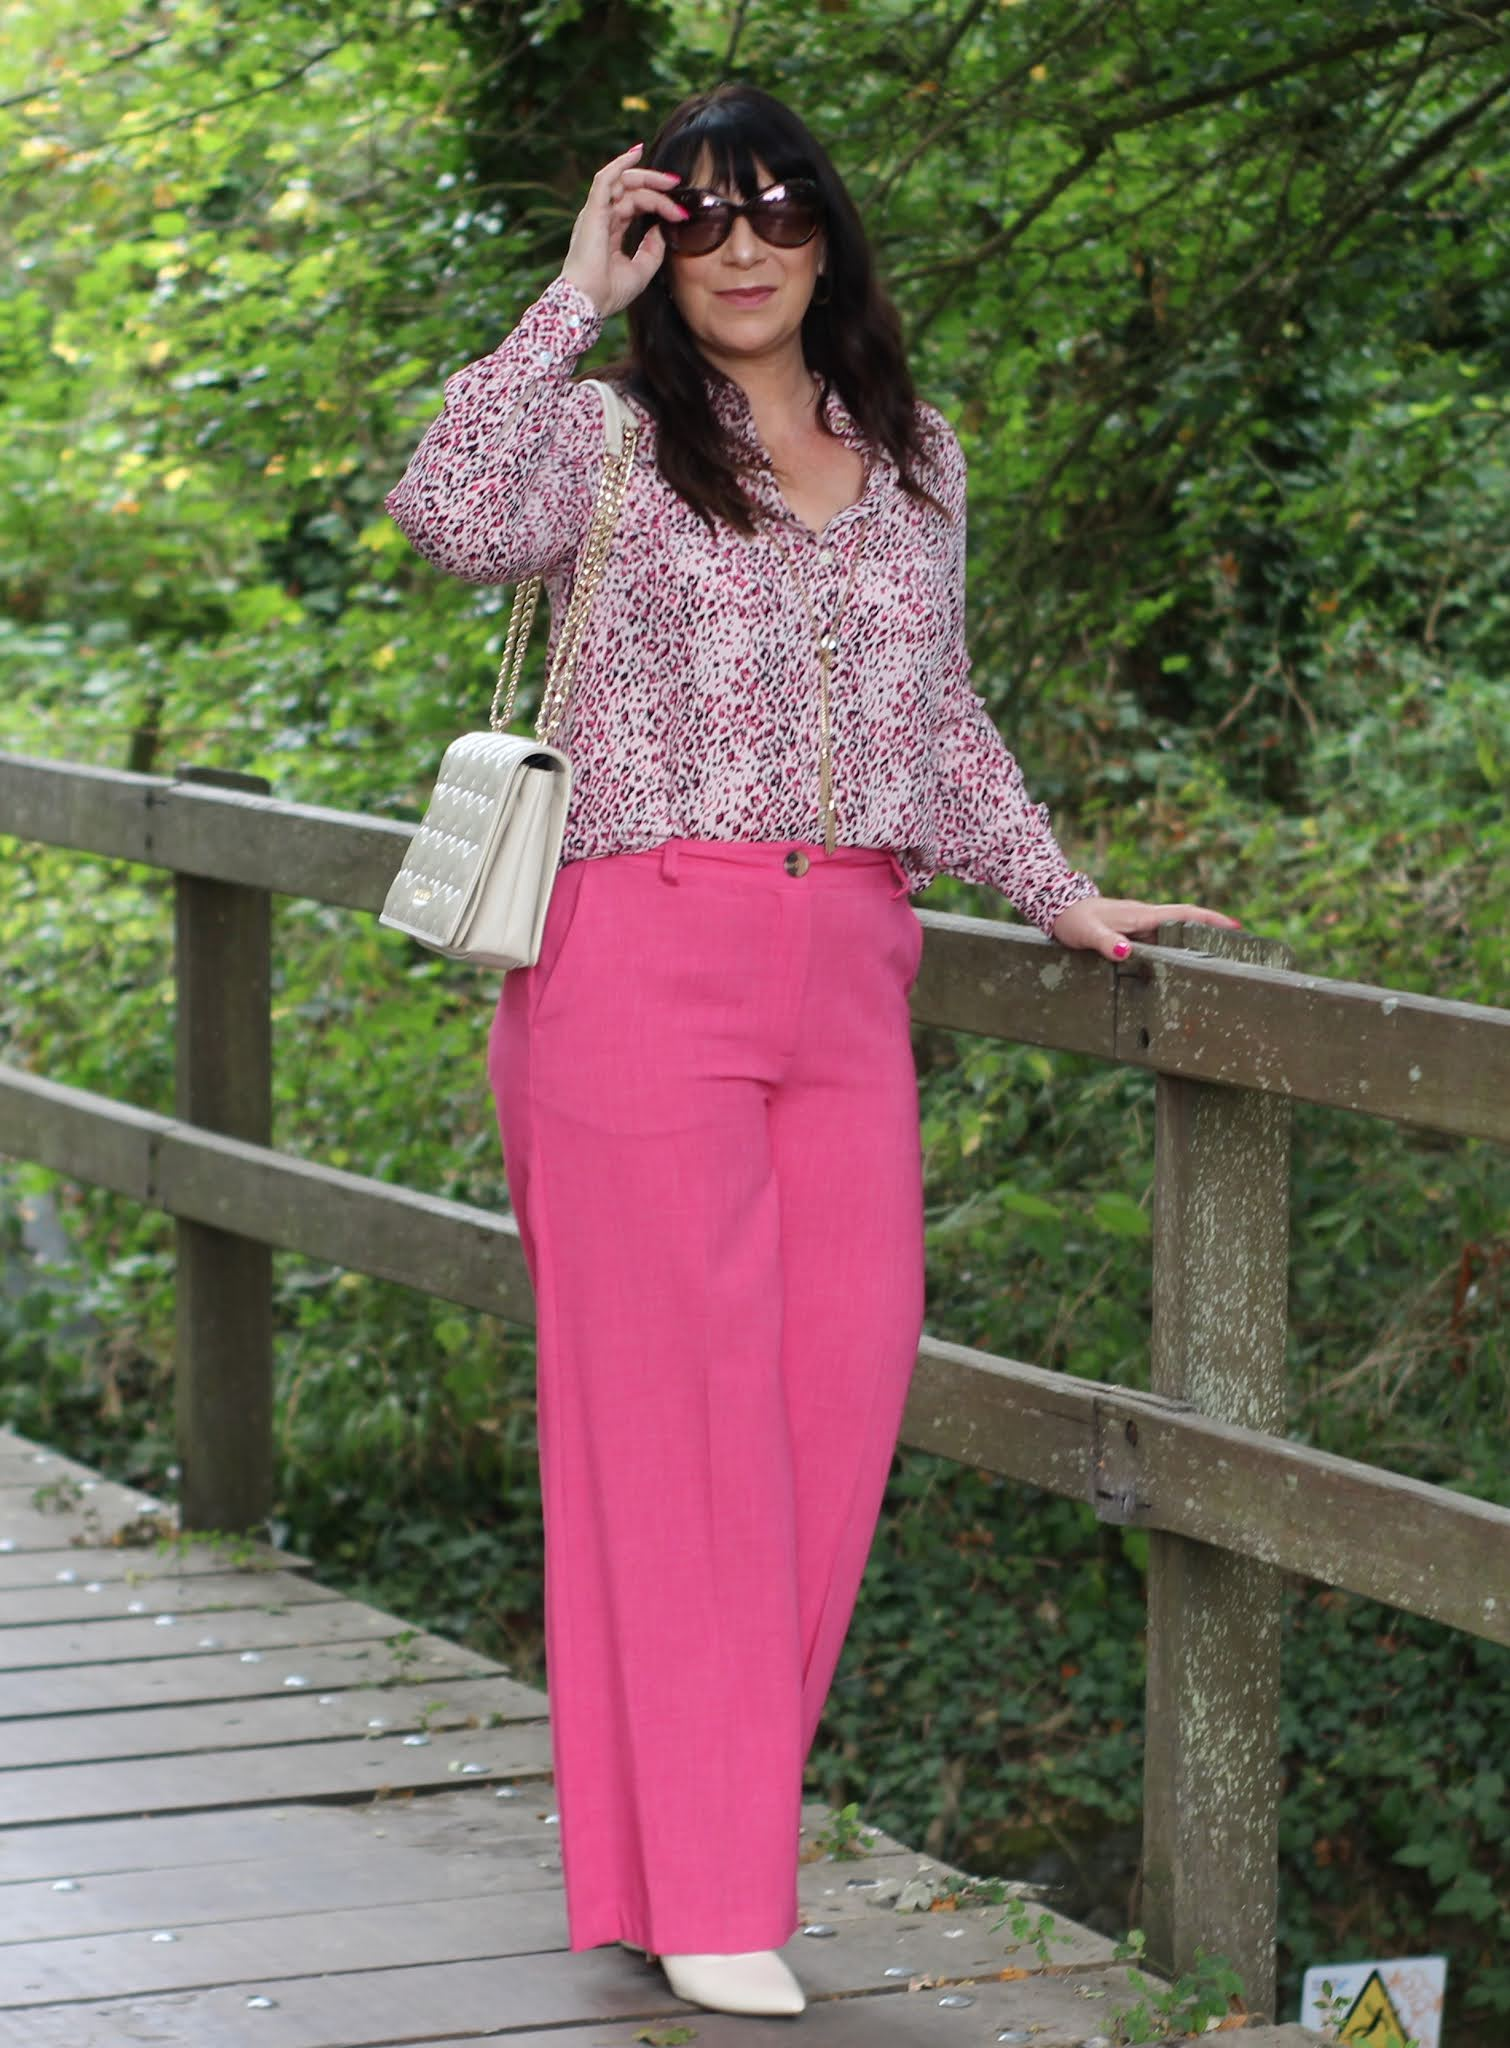 Style Not Age are Pretty in Pink.